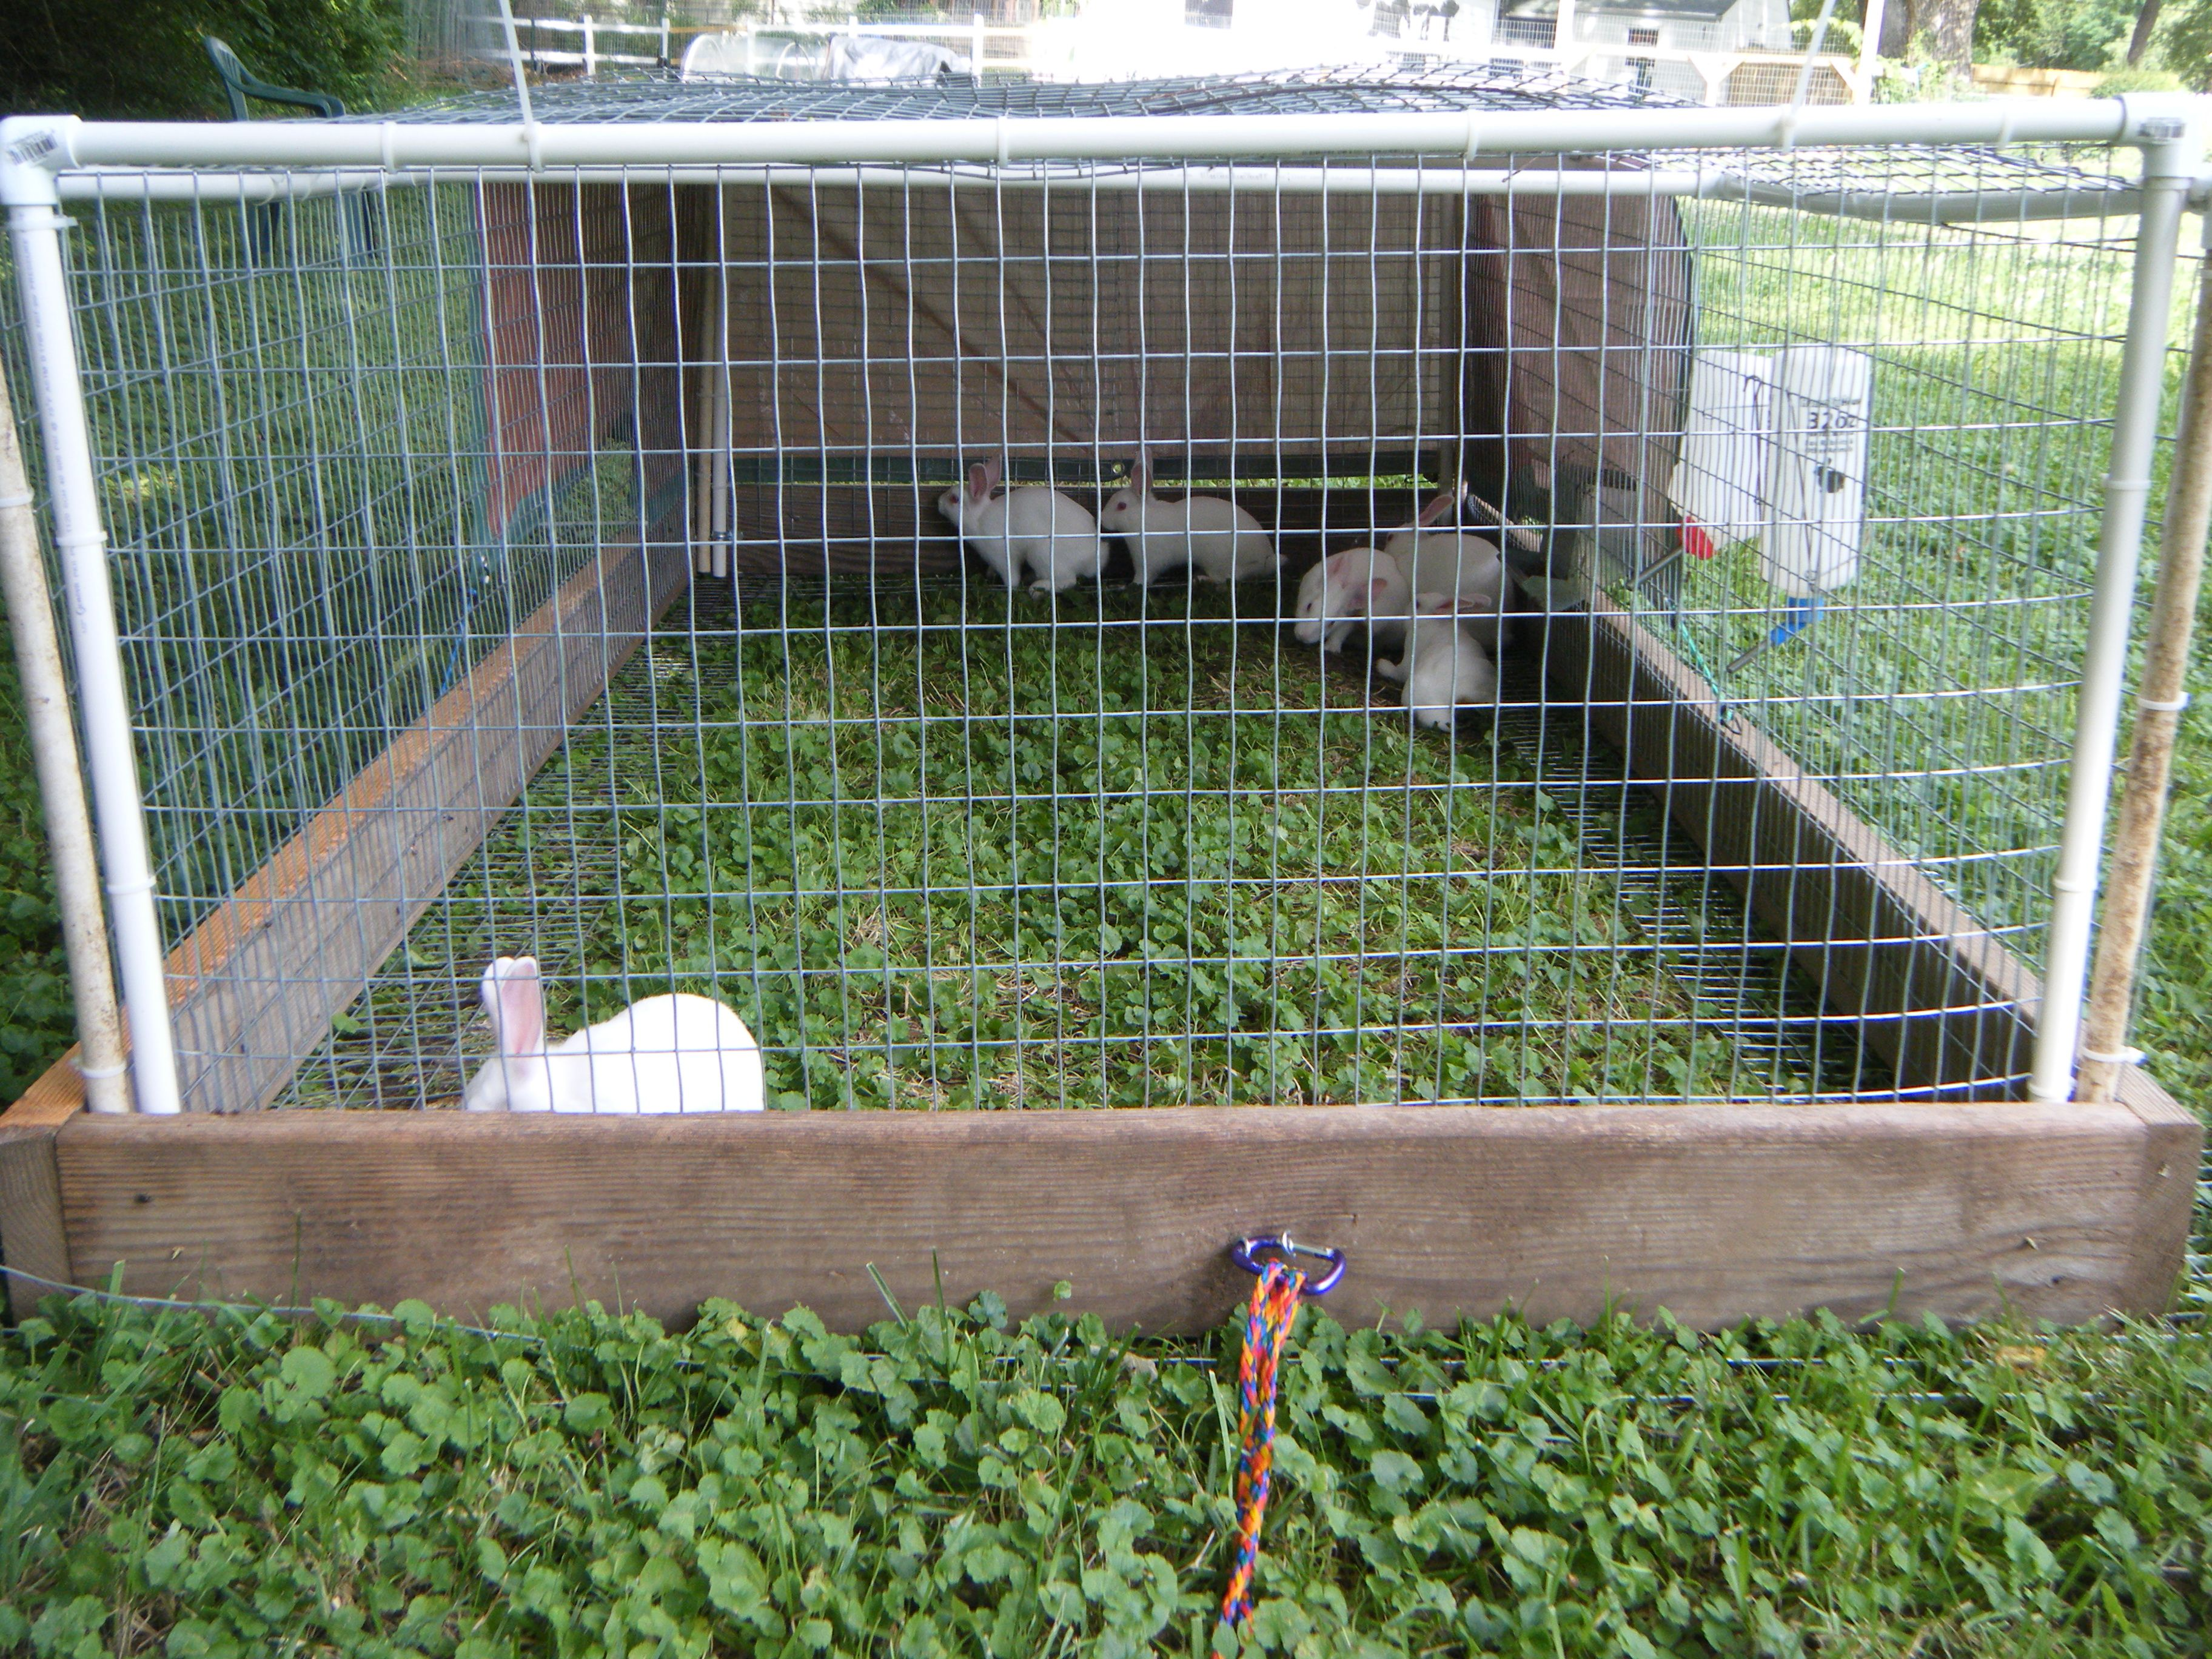 Living Lawn Mowers In Their Rabbit Tractor It Needs To Be Moved A